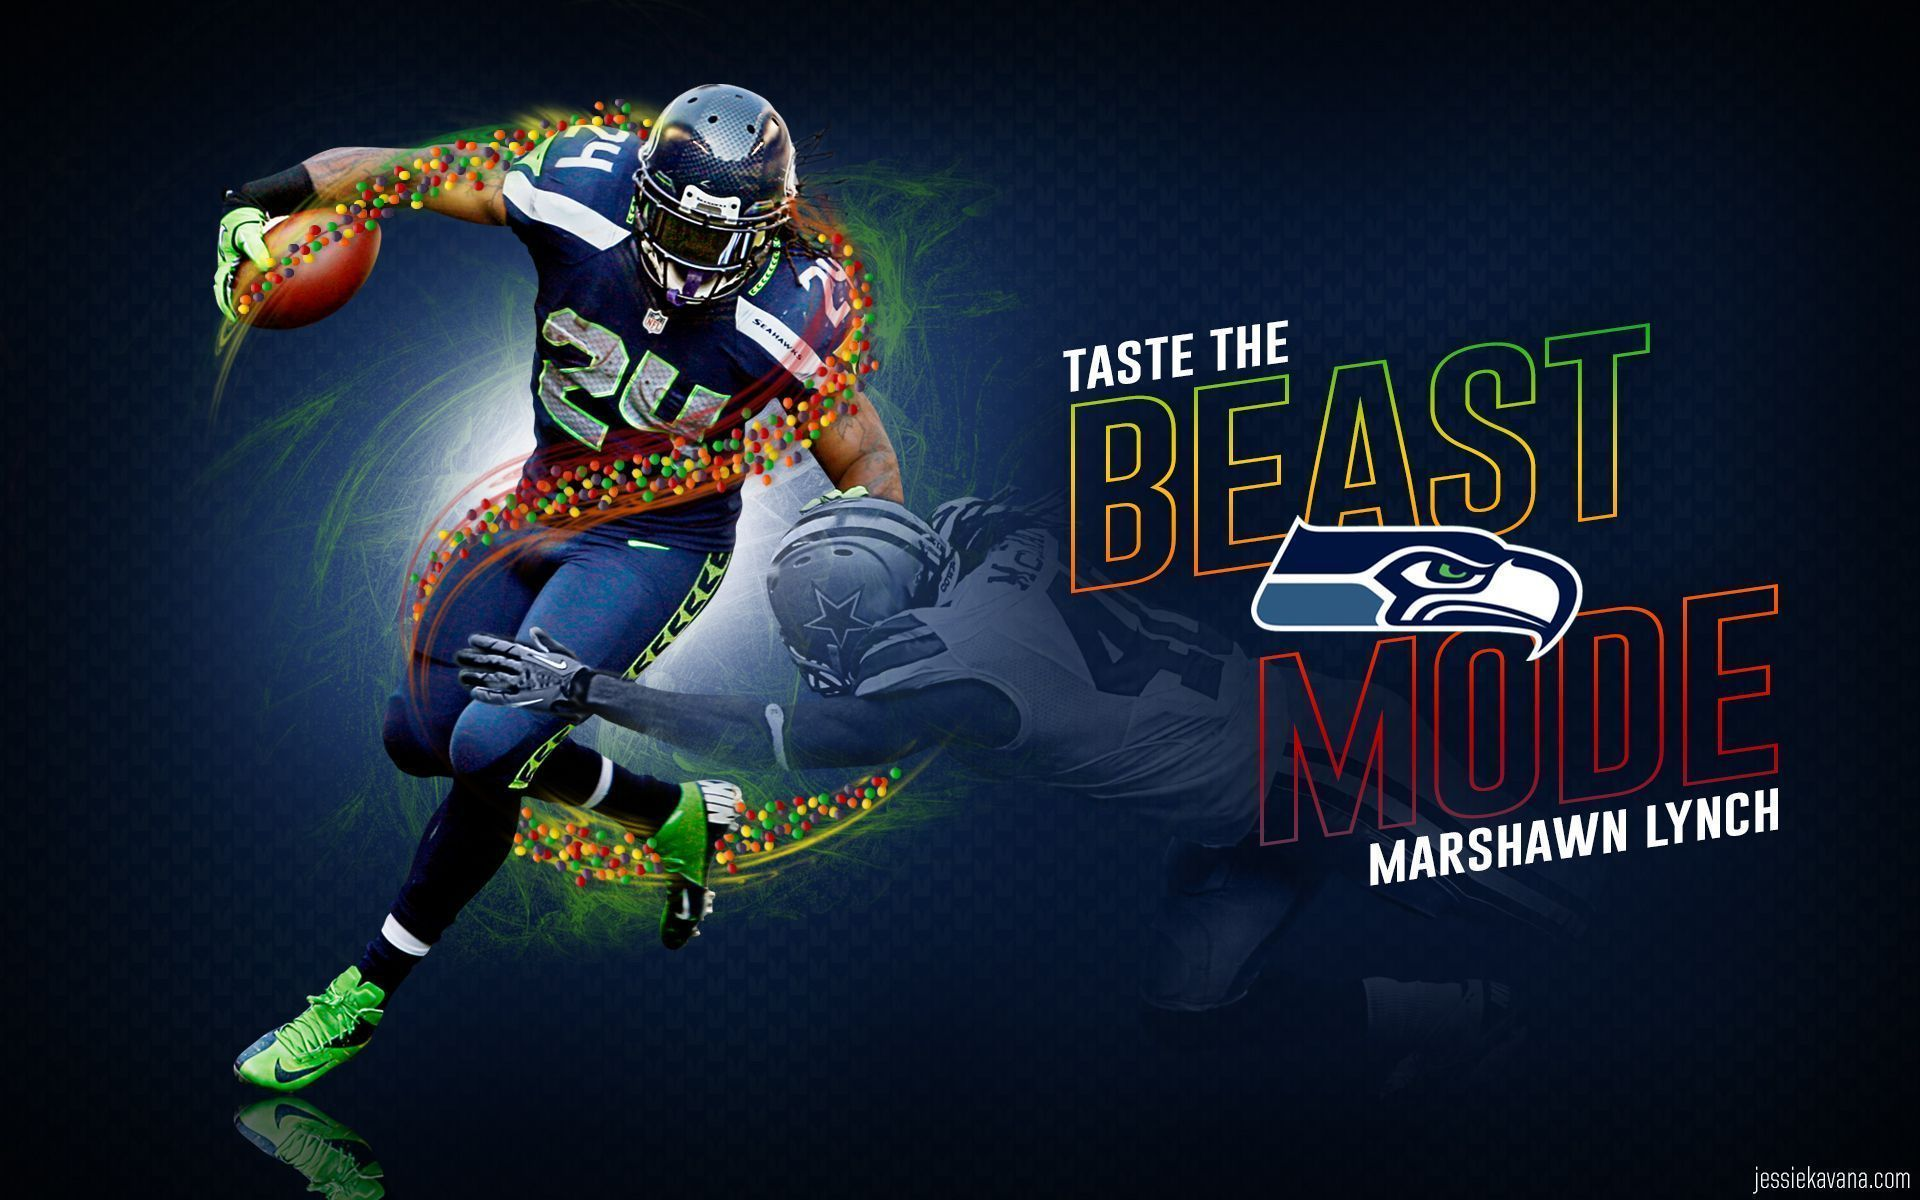 Marshawn Lynch HD wallpaper for download